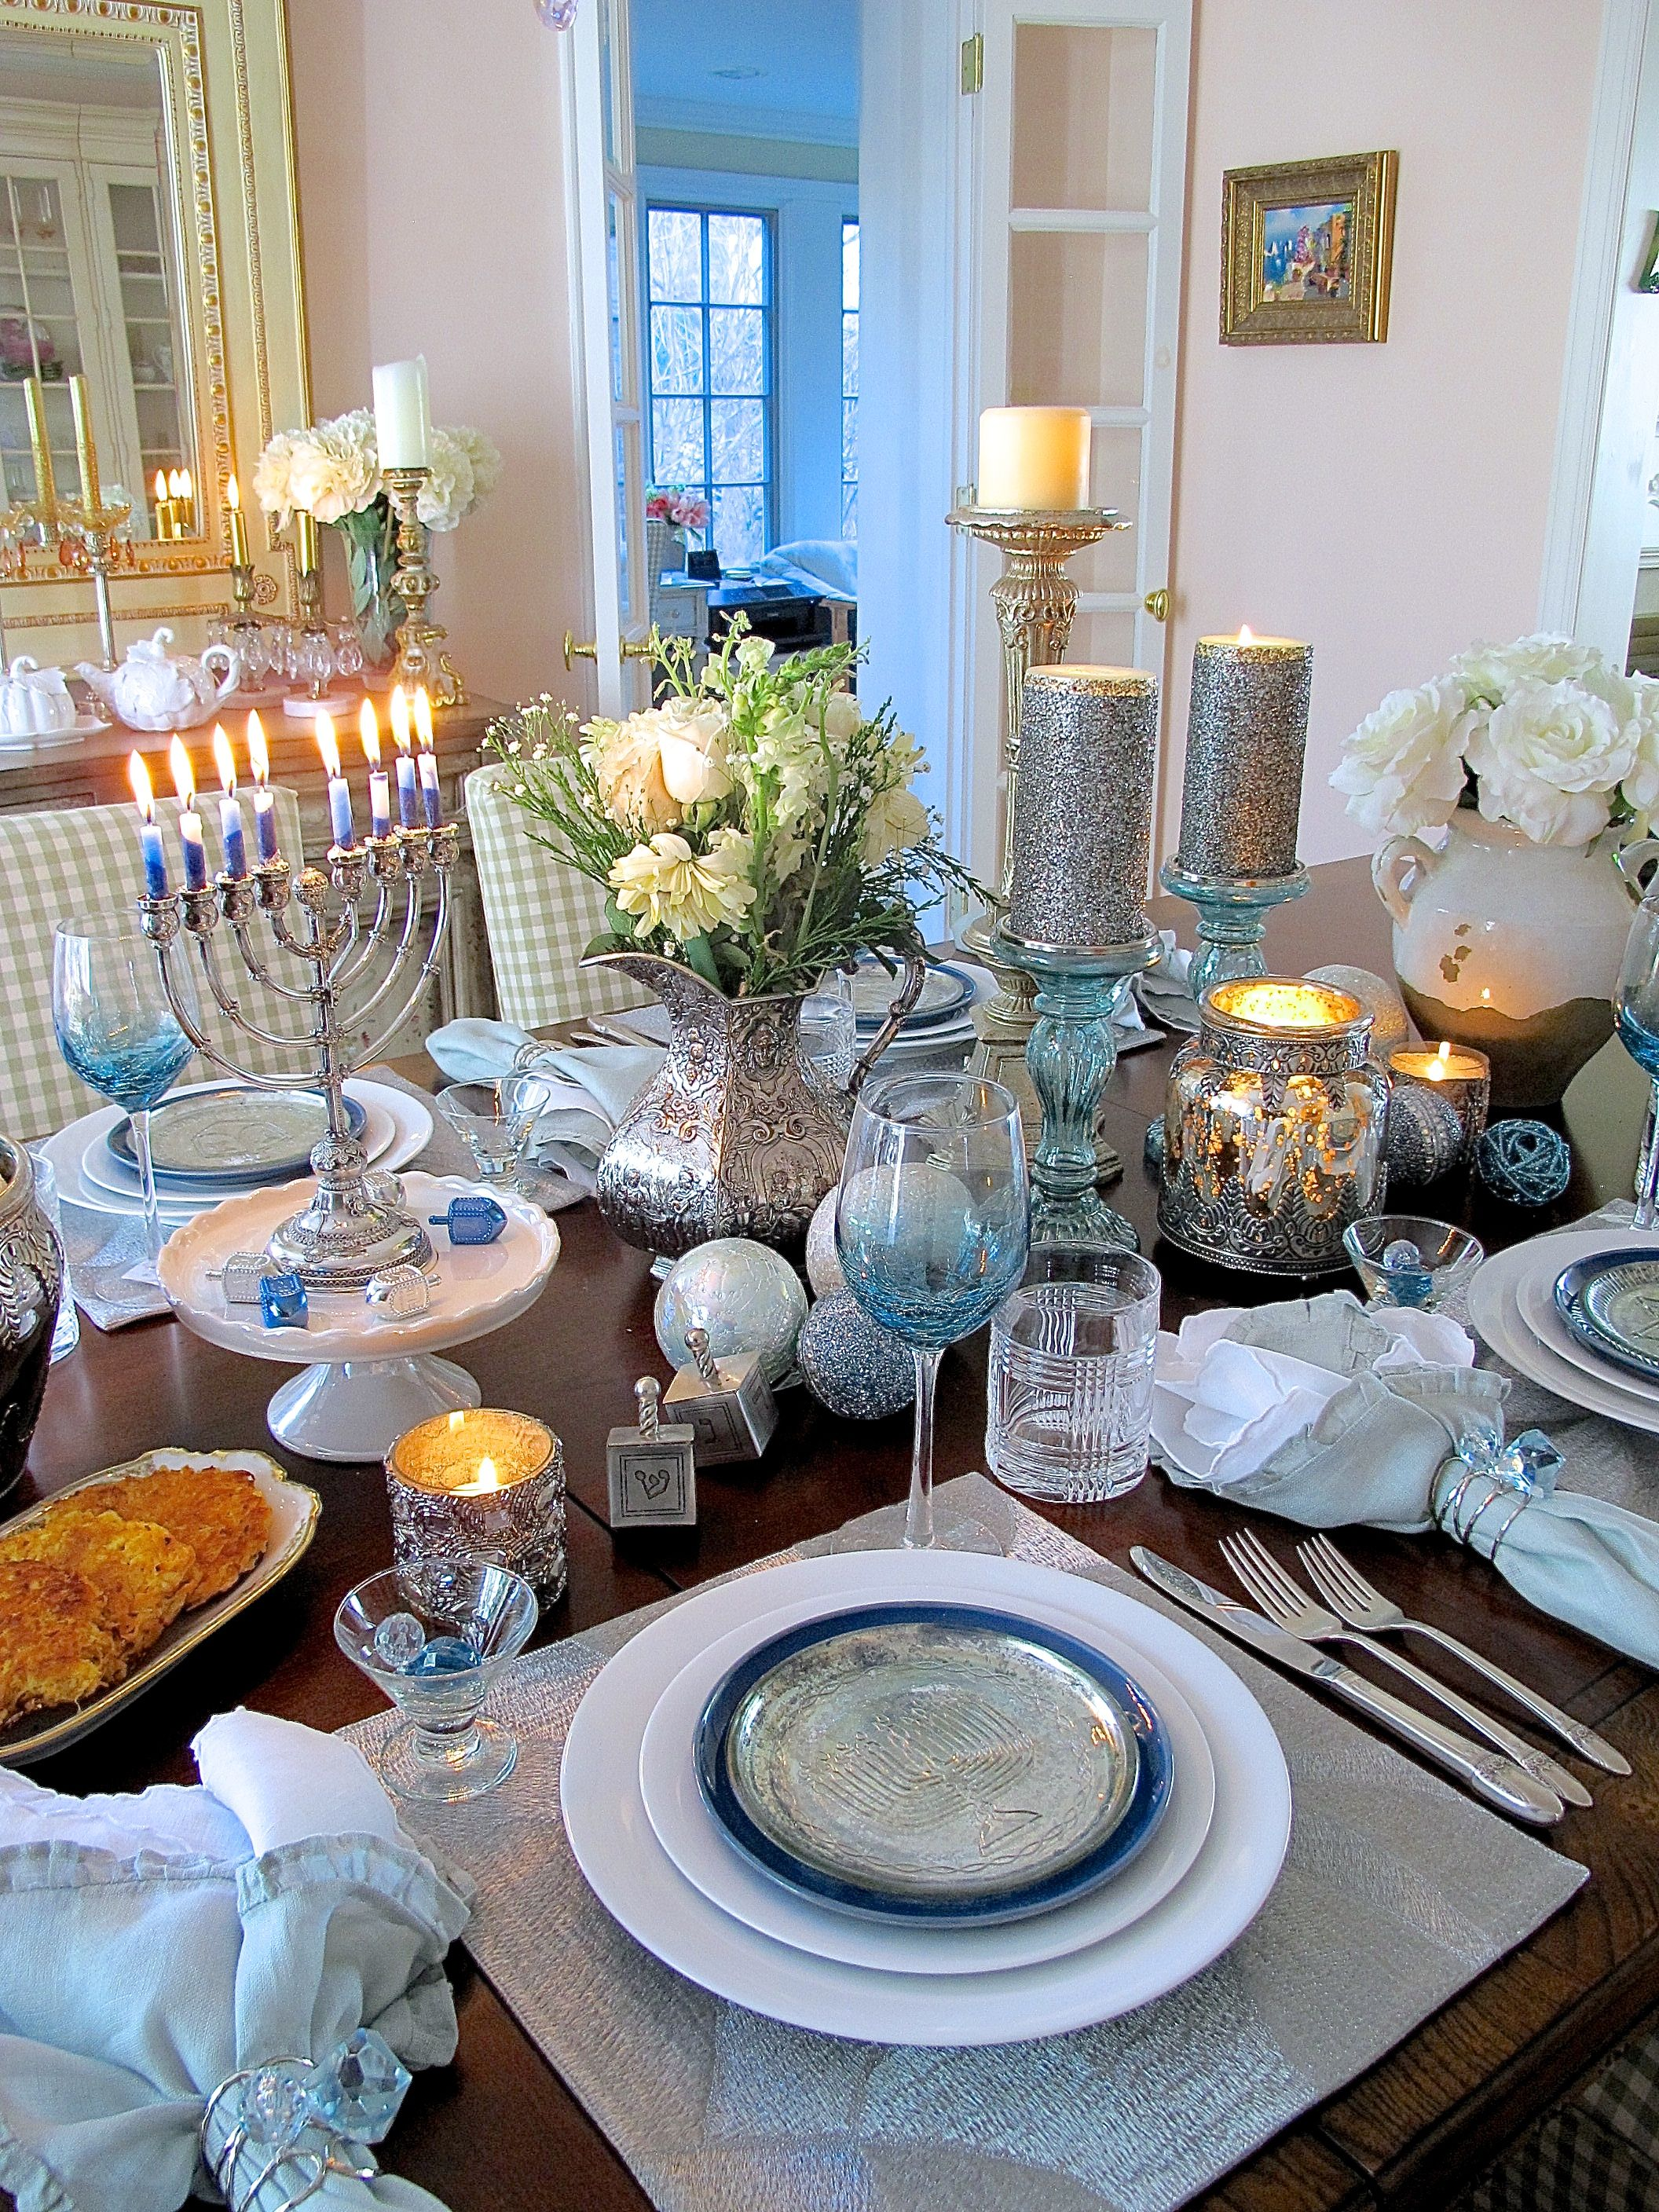 Candlelit Festival of Lights Hanukkah Table Setting